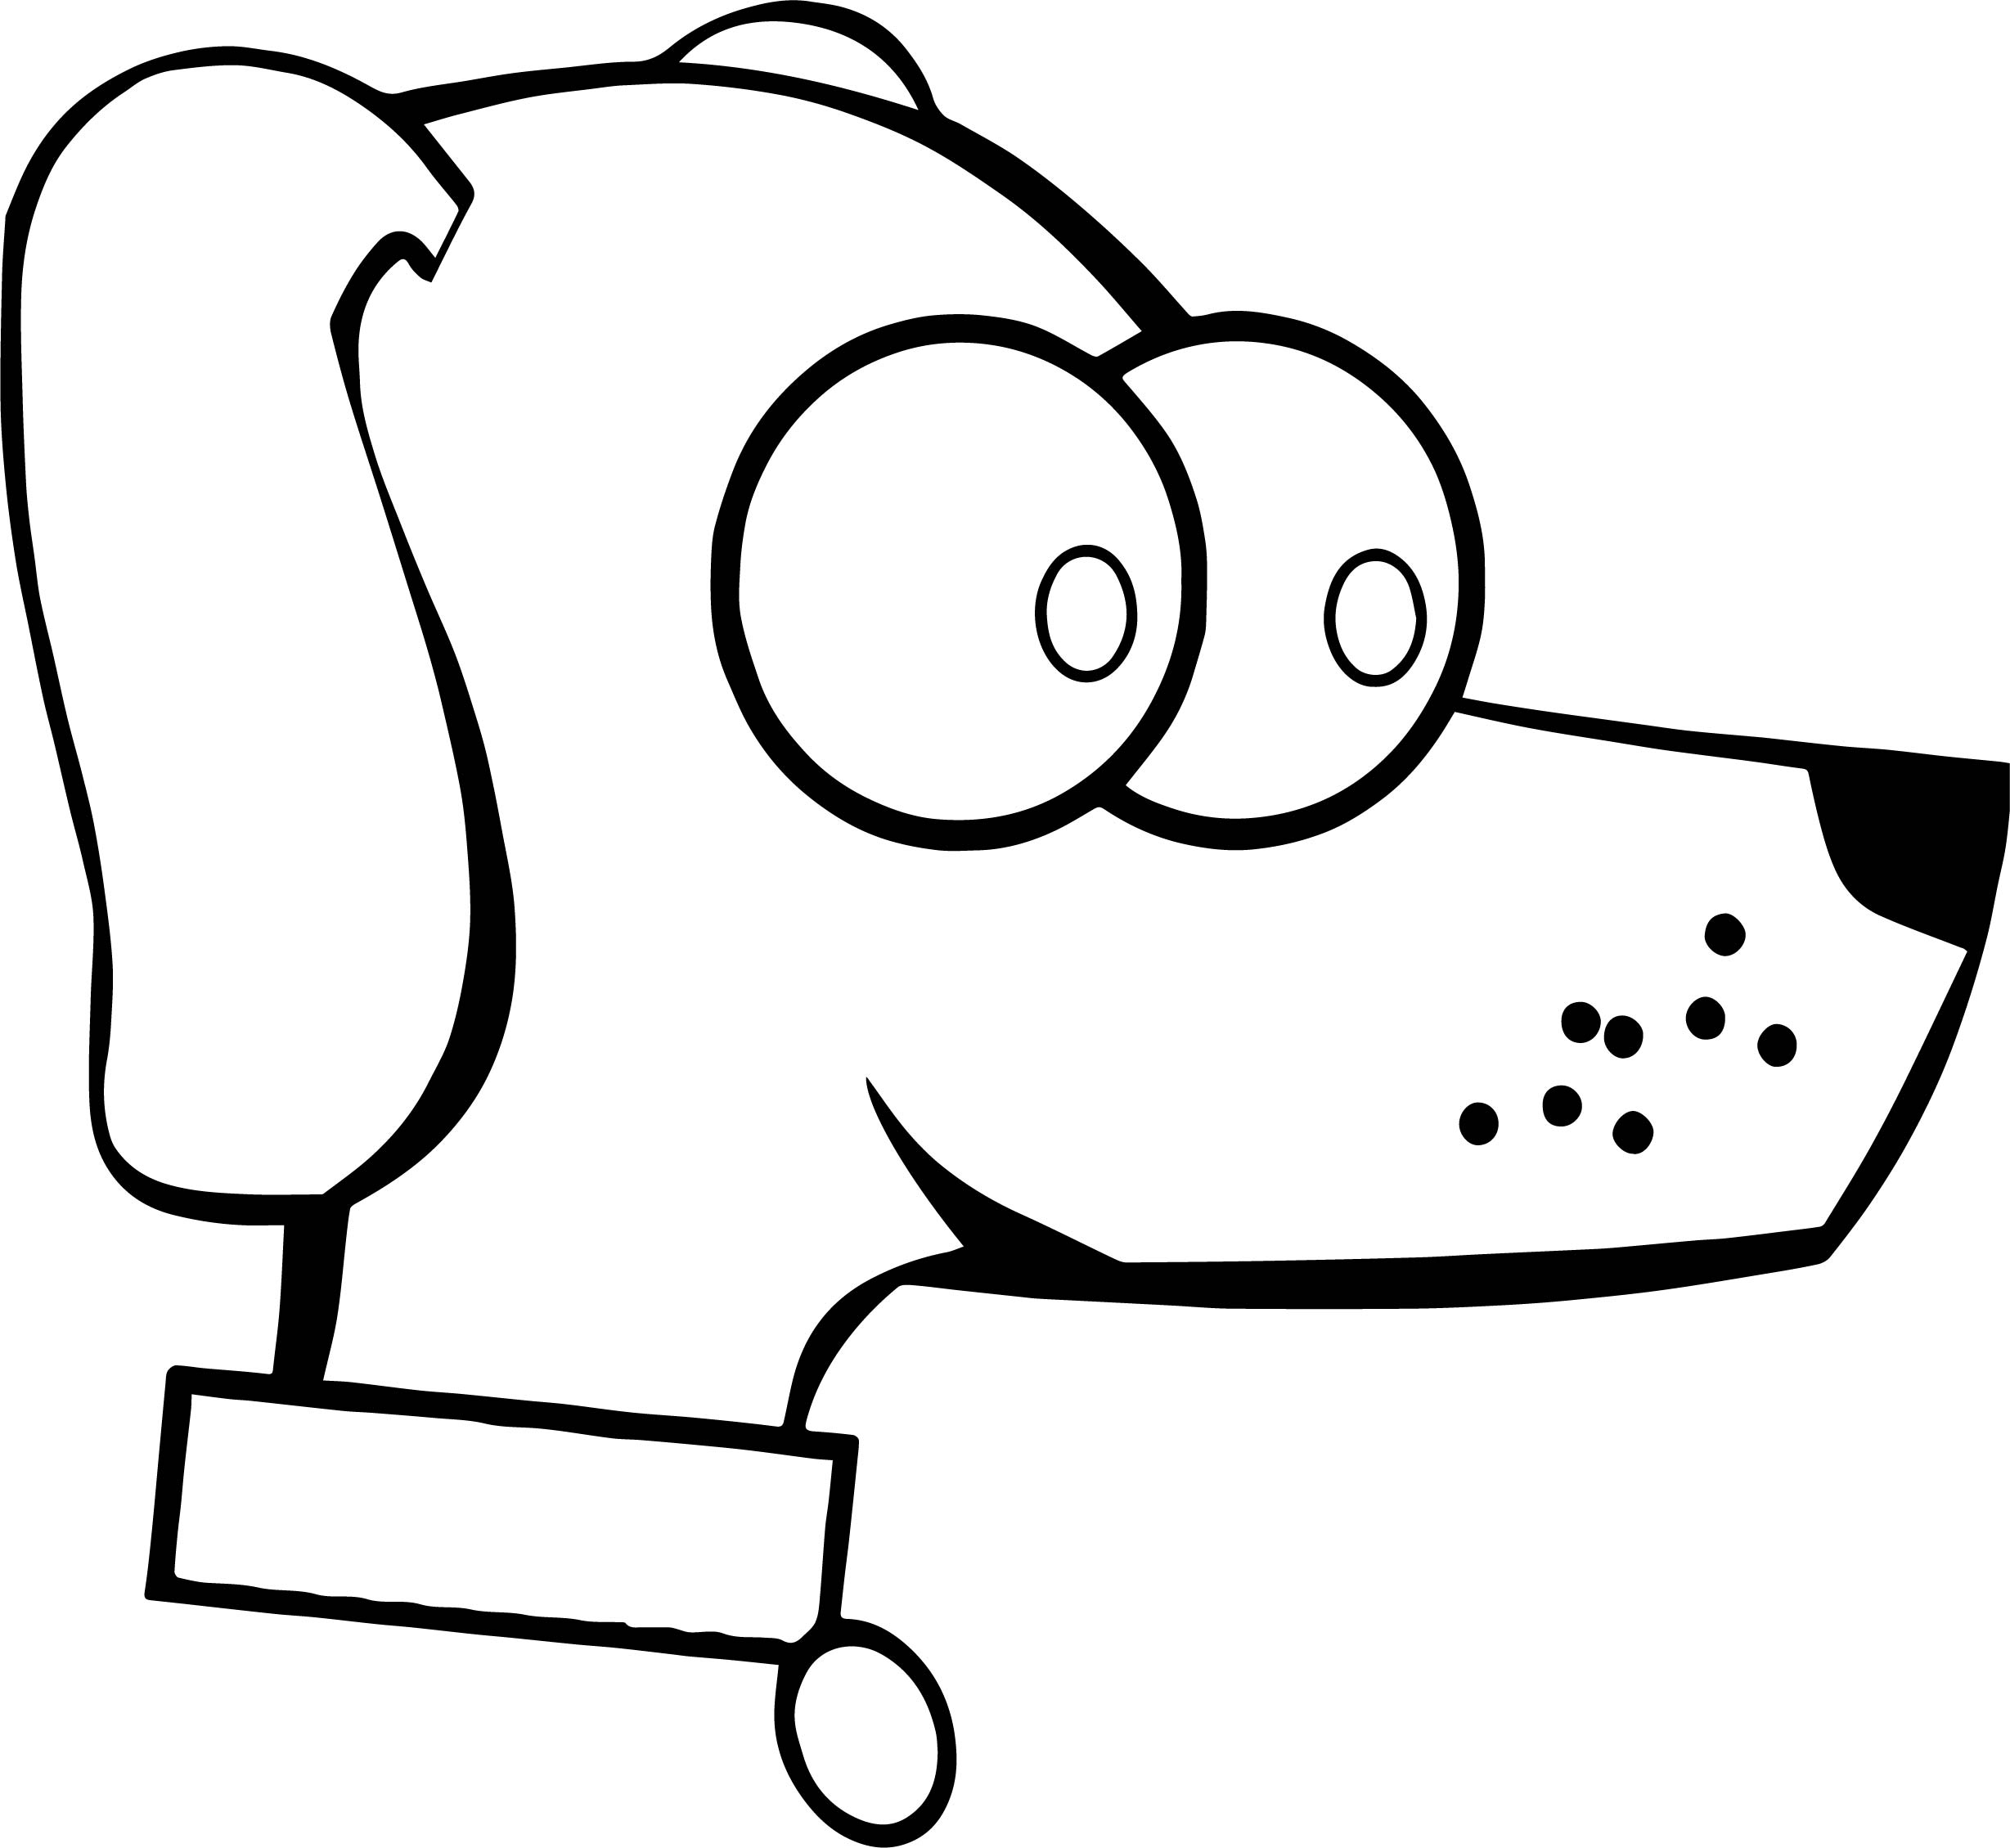 Big face puppy dog coloring page for Dog face coloring page